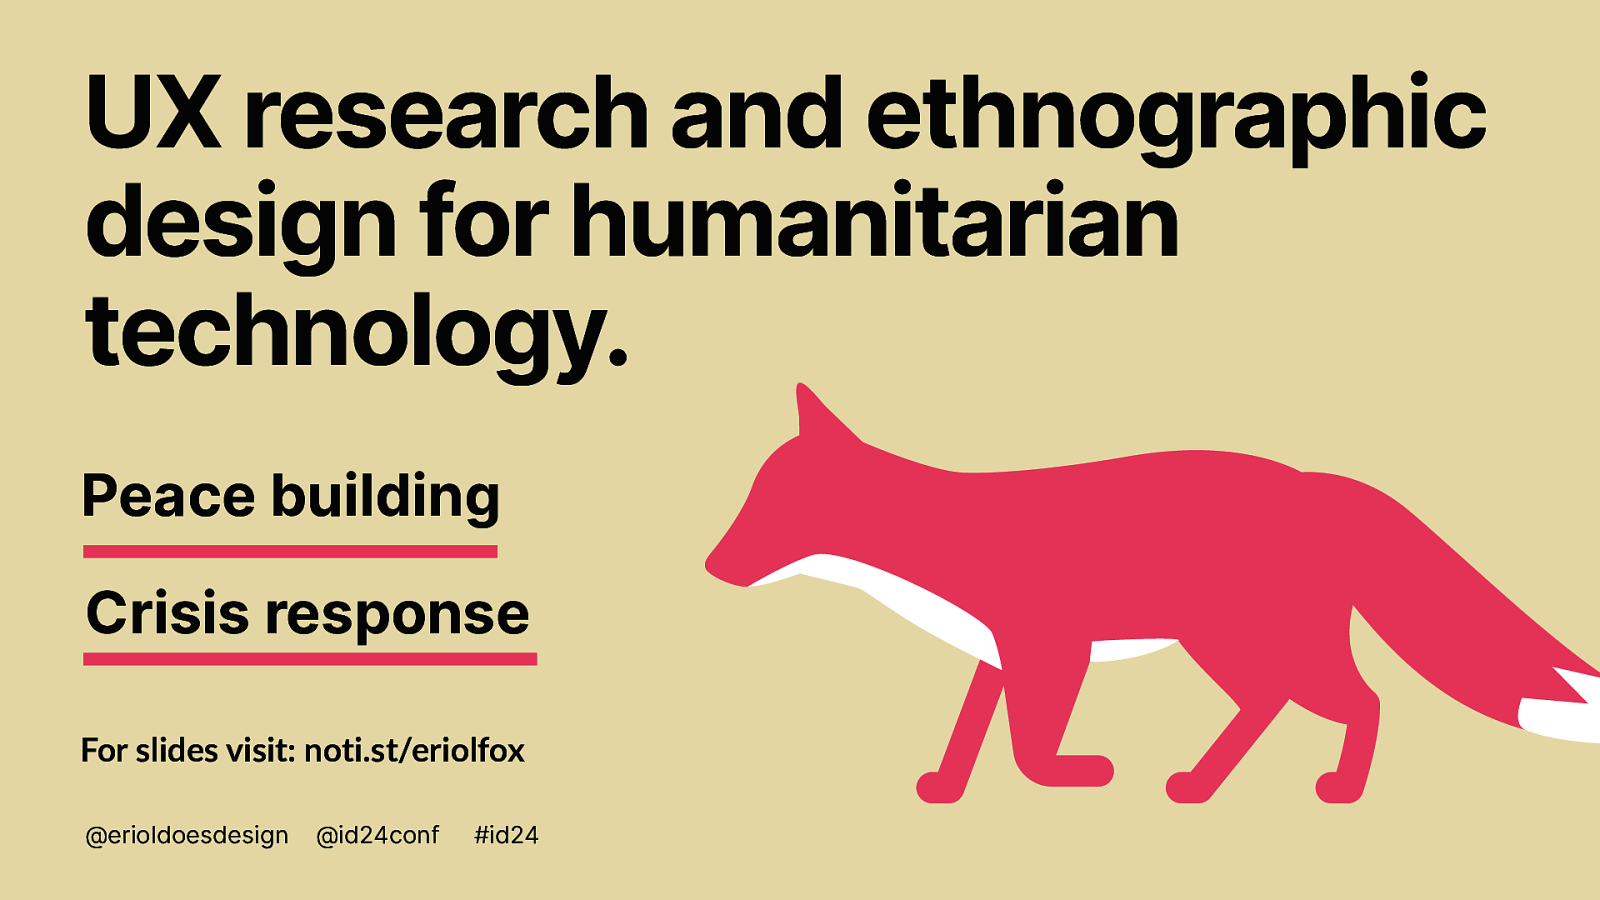 UX research and ethnographic design for humanitarian technology.